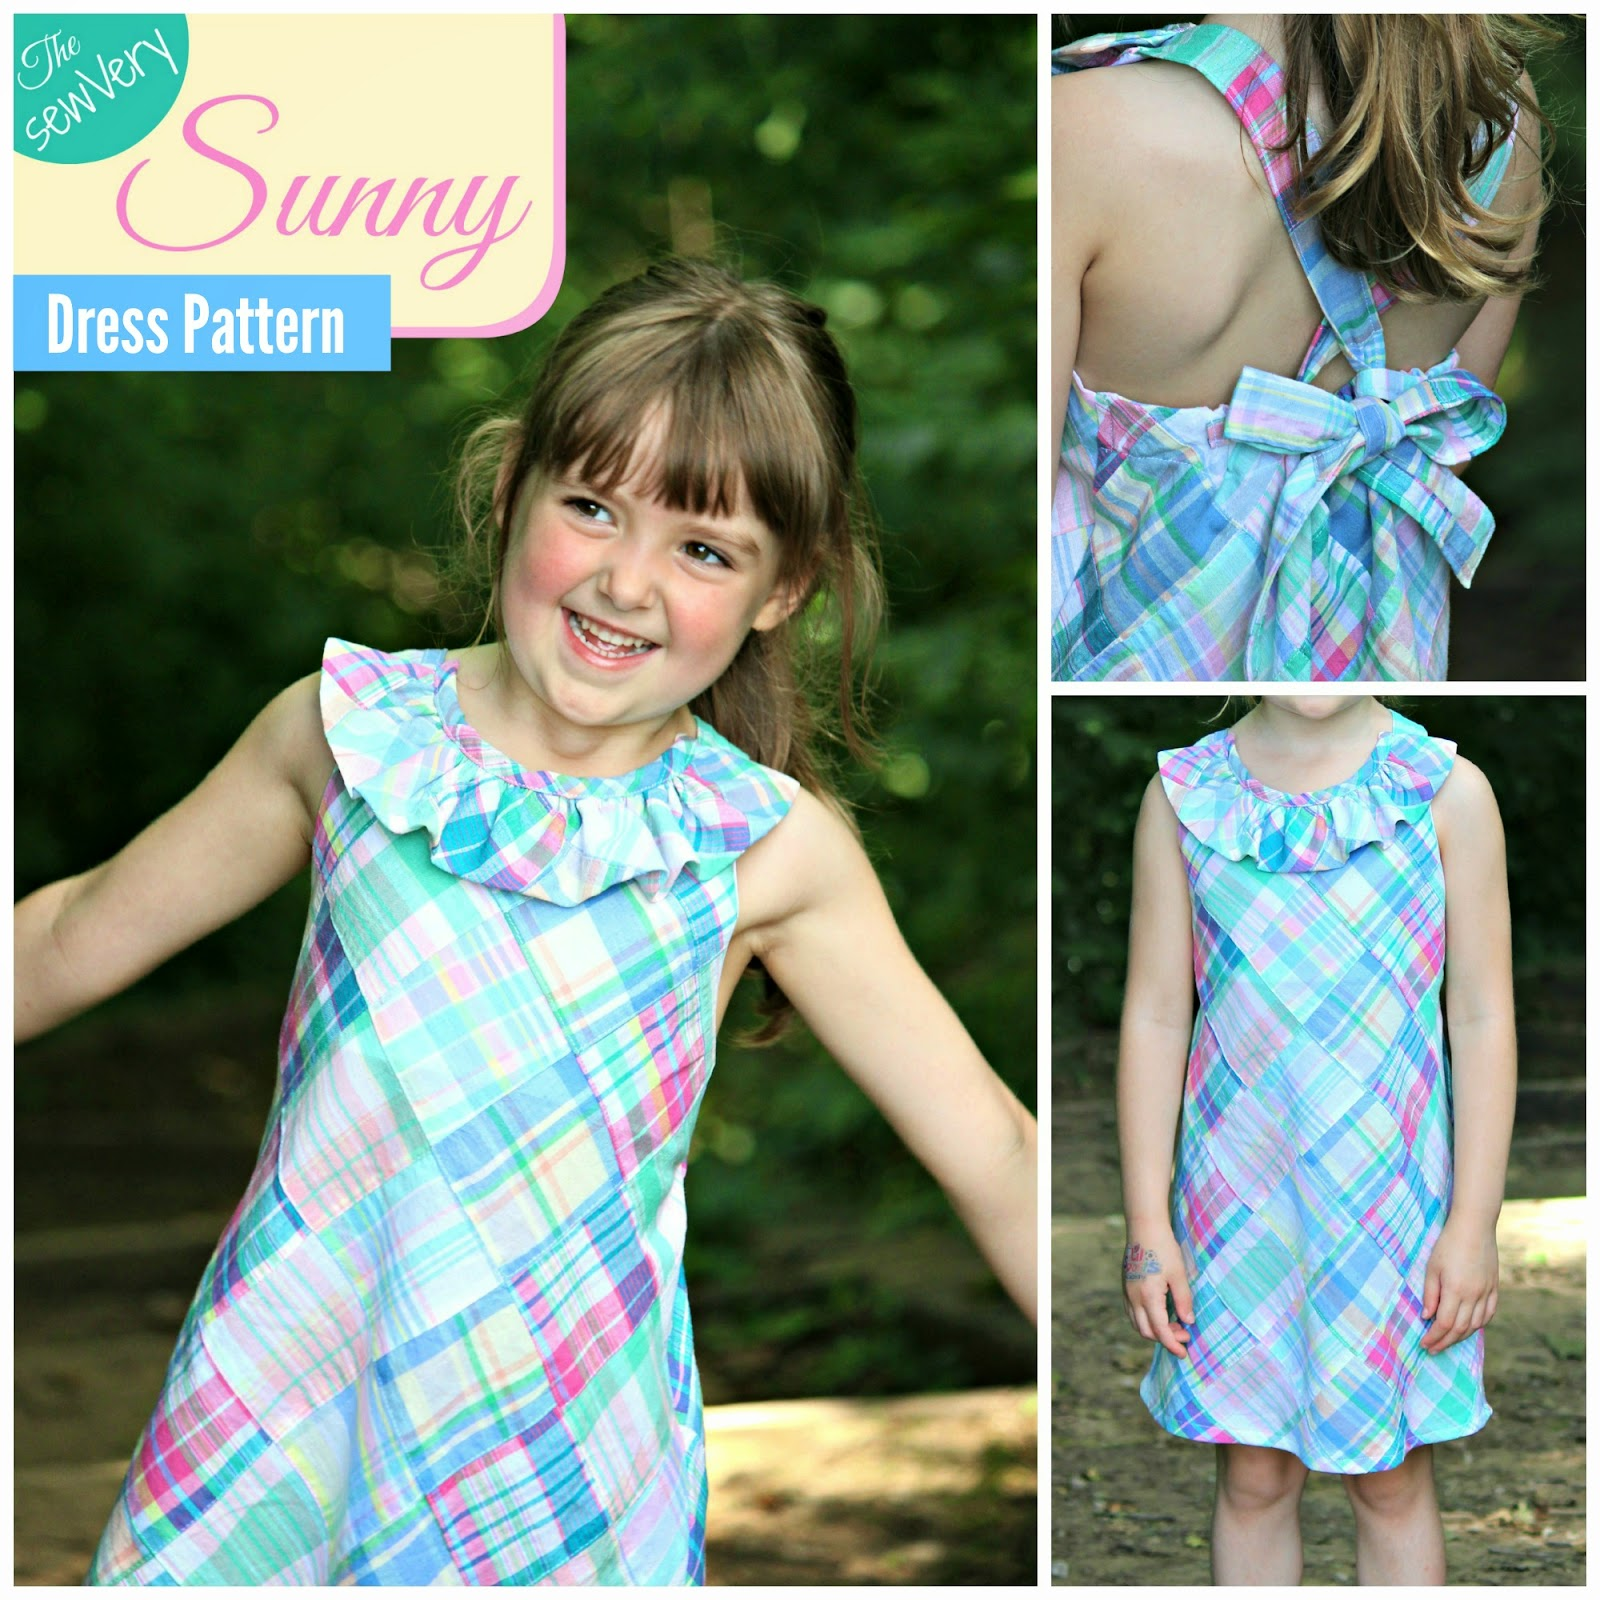 The sewVery Sunny Dress Pattern in Sizes 5, 6, and 7